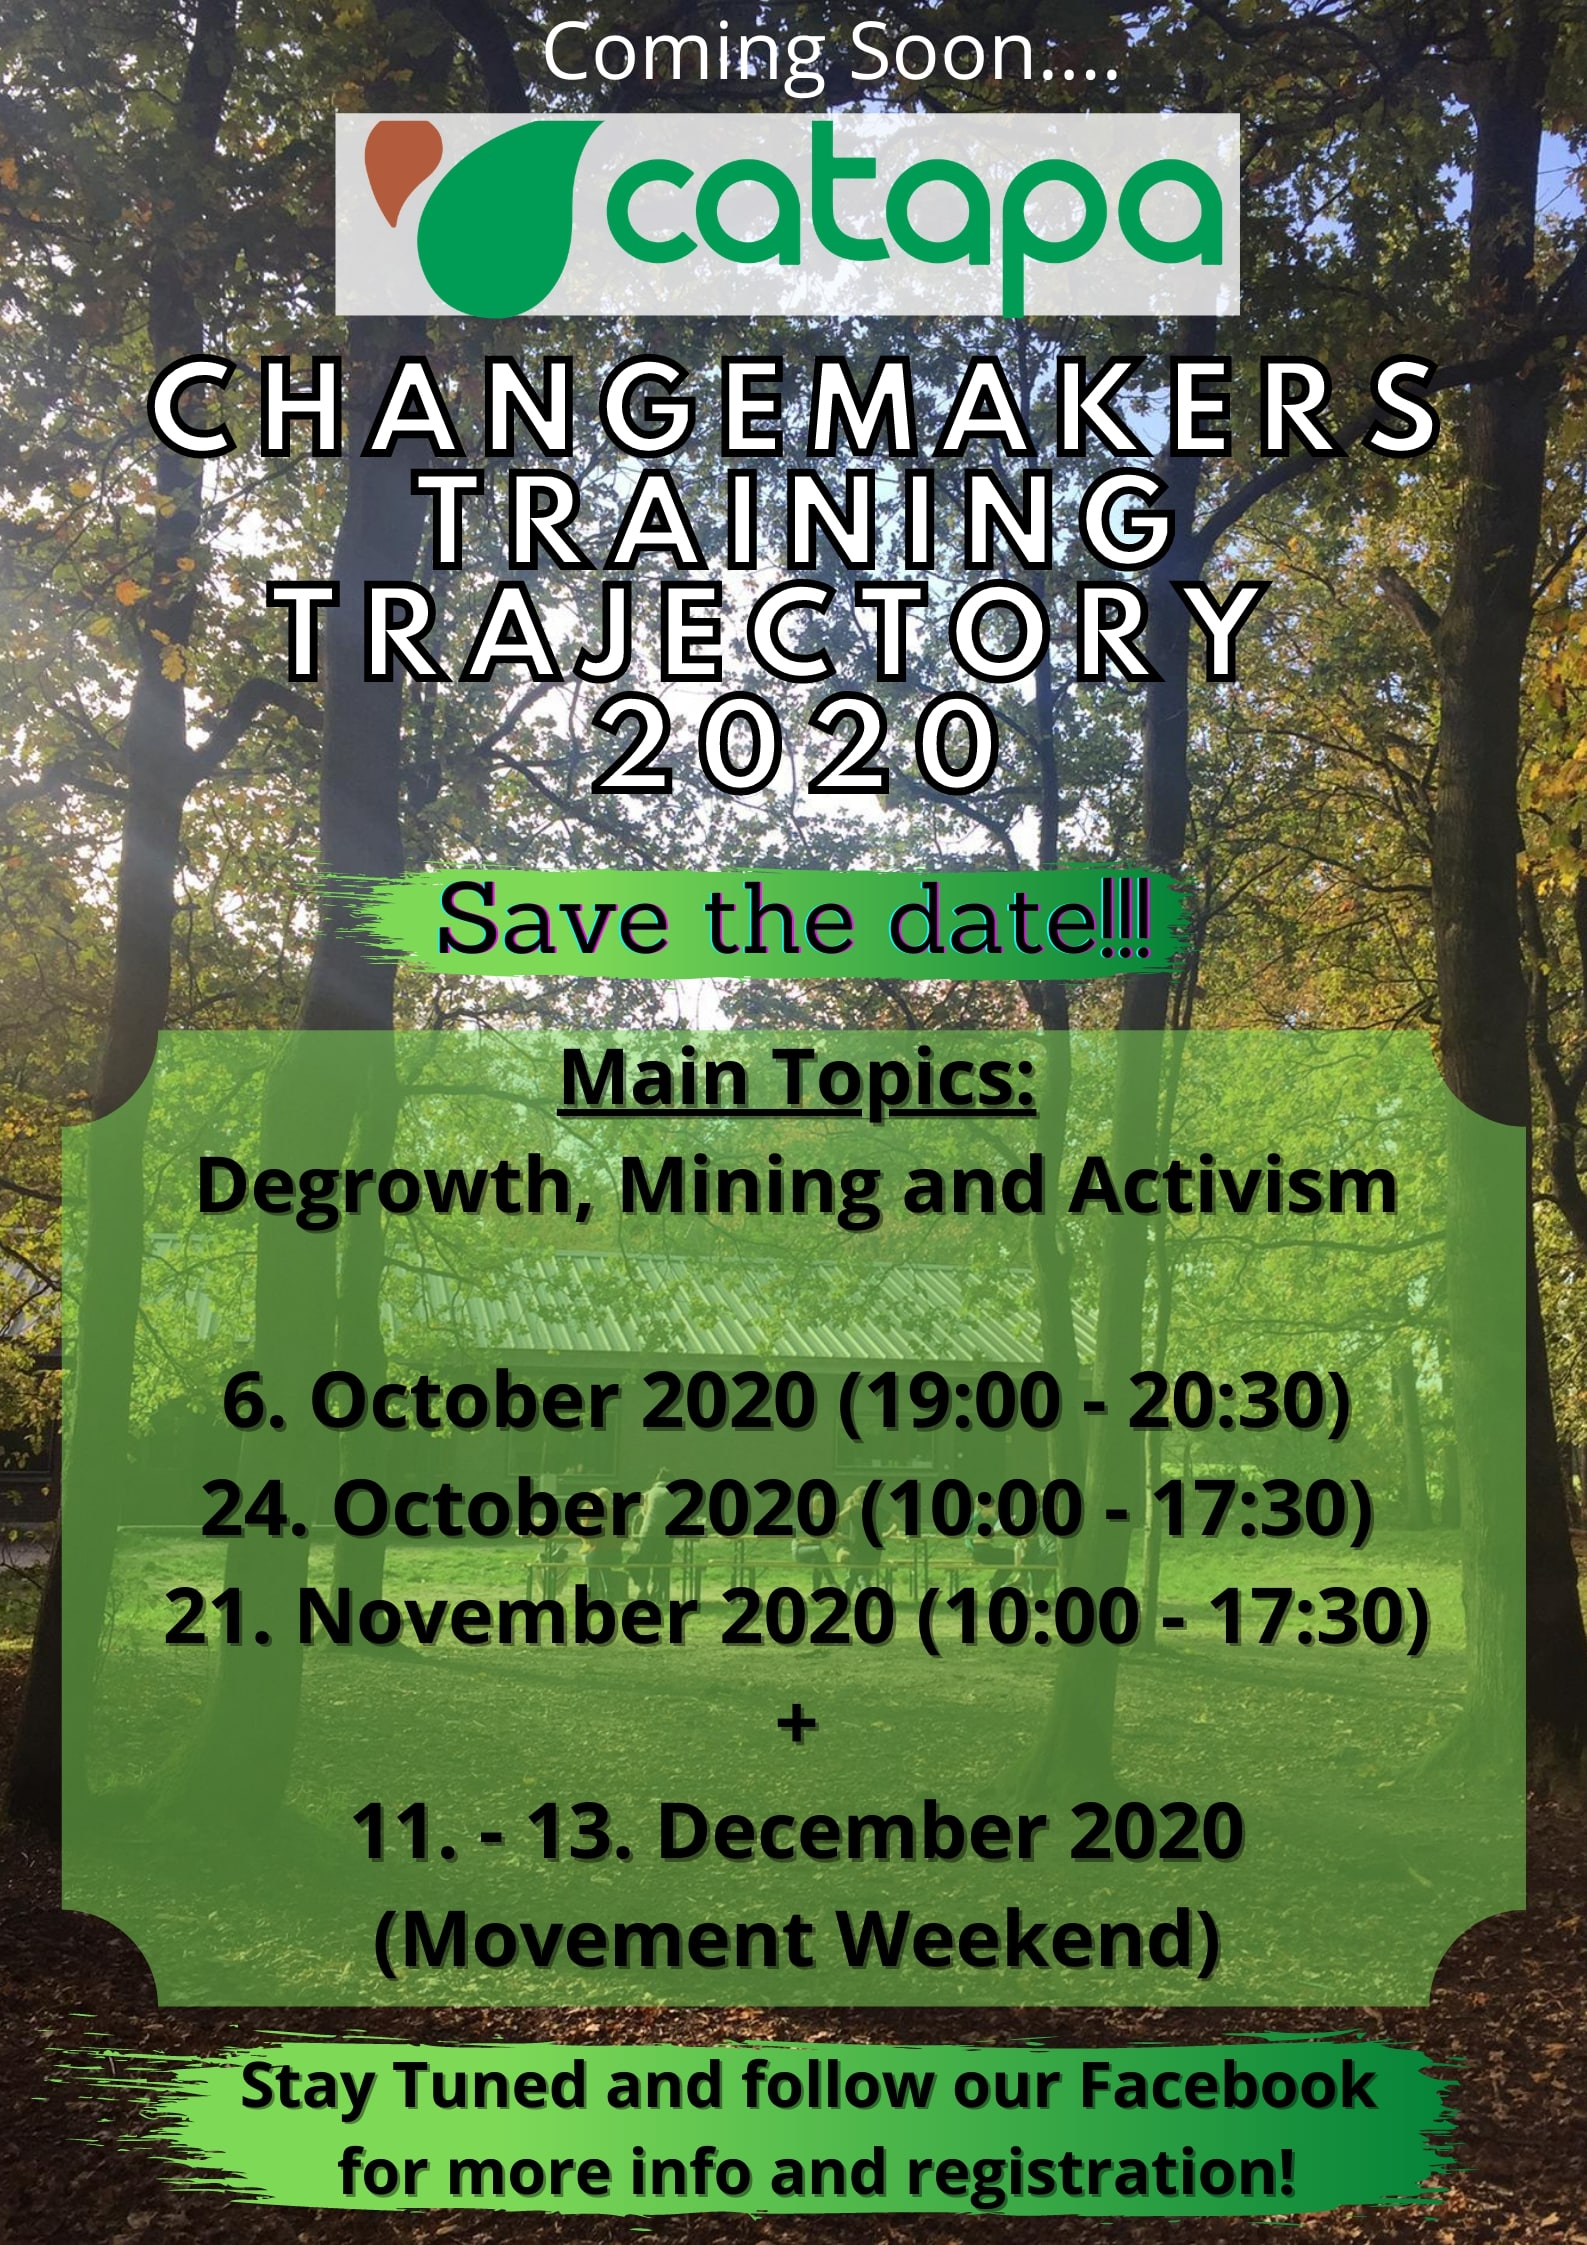 Changemakers Trajectory 2020_Promo_Newsletter